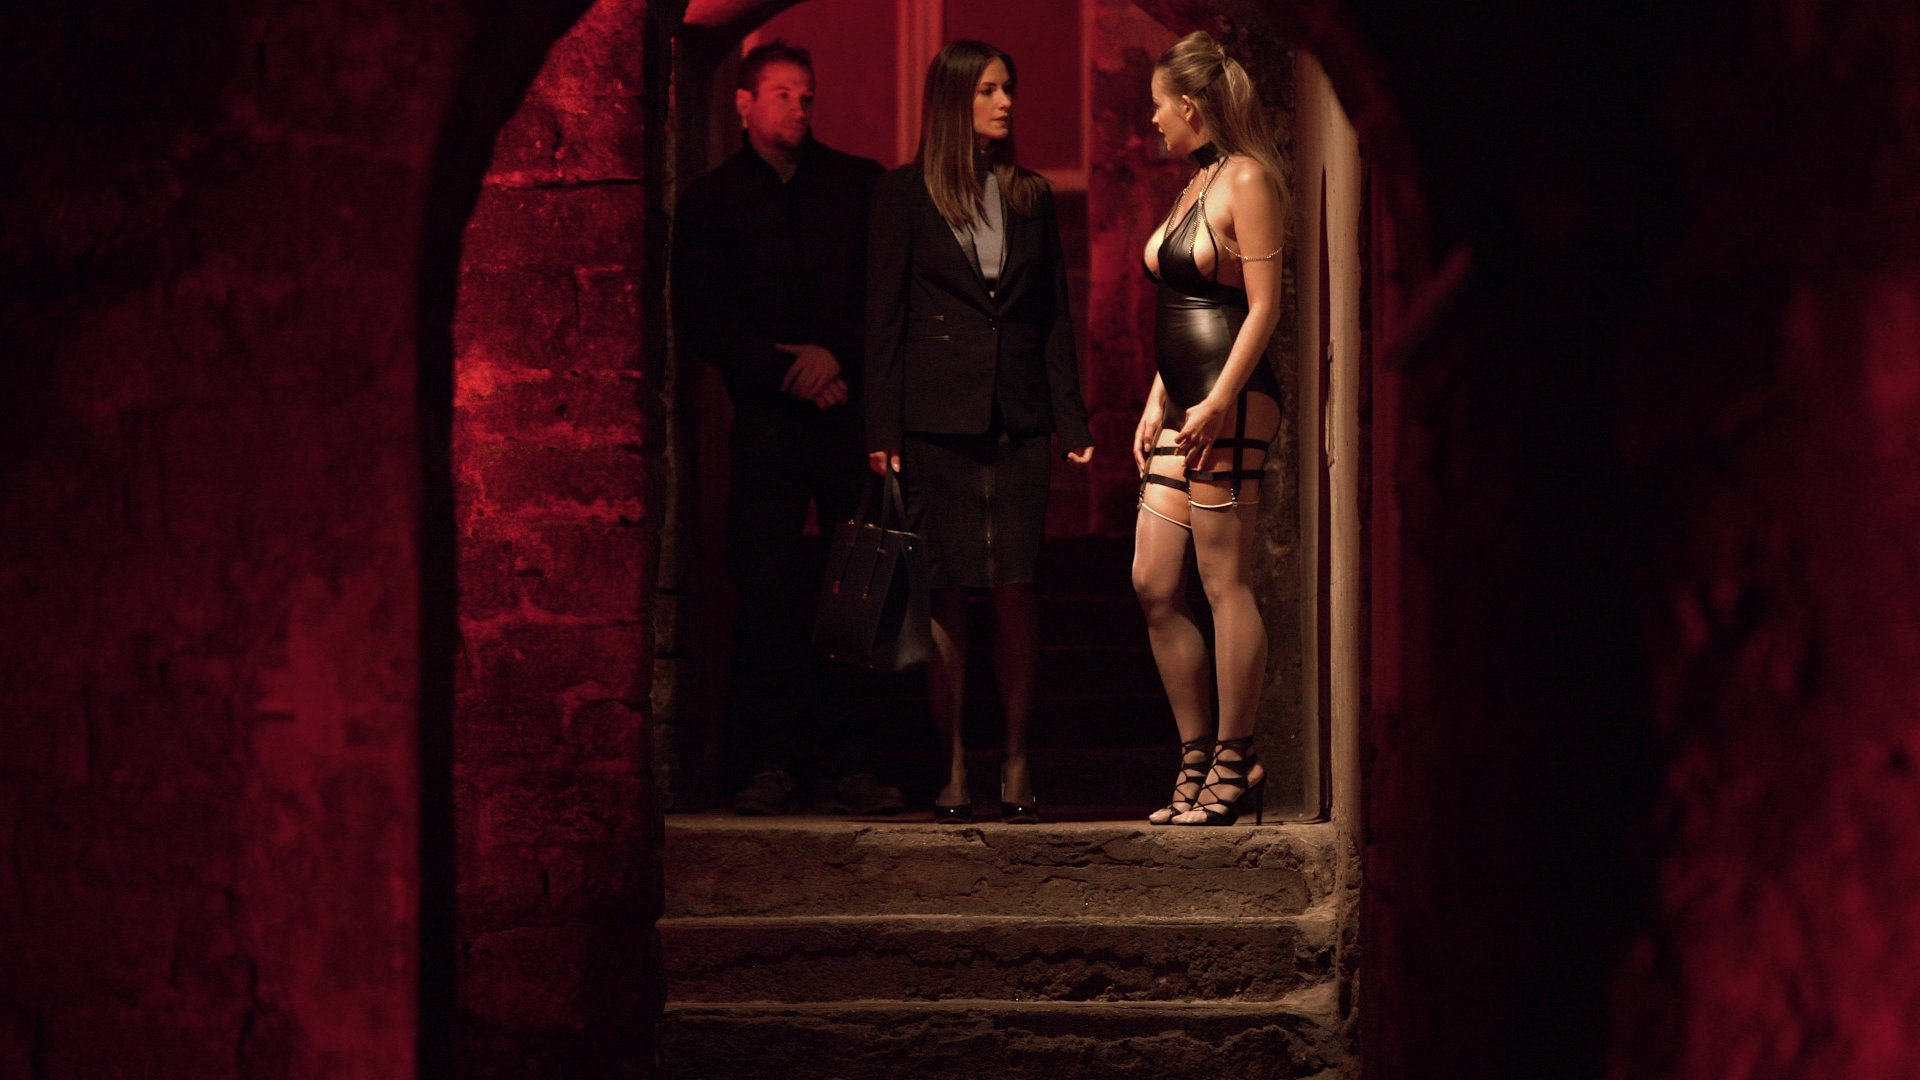 Preview image 3 out of 20  of scene 7 from Claire Desires Of Submission